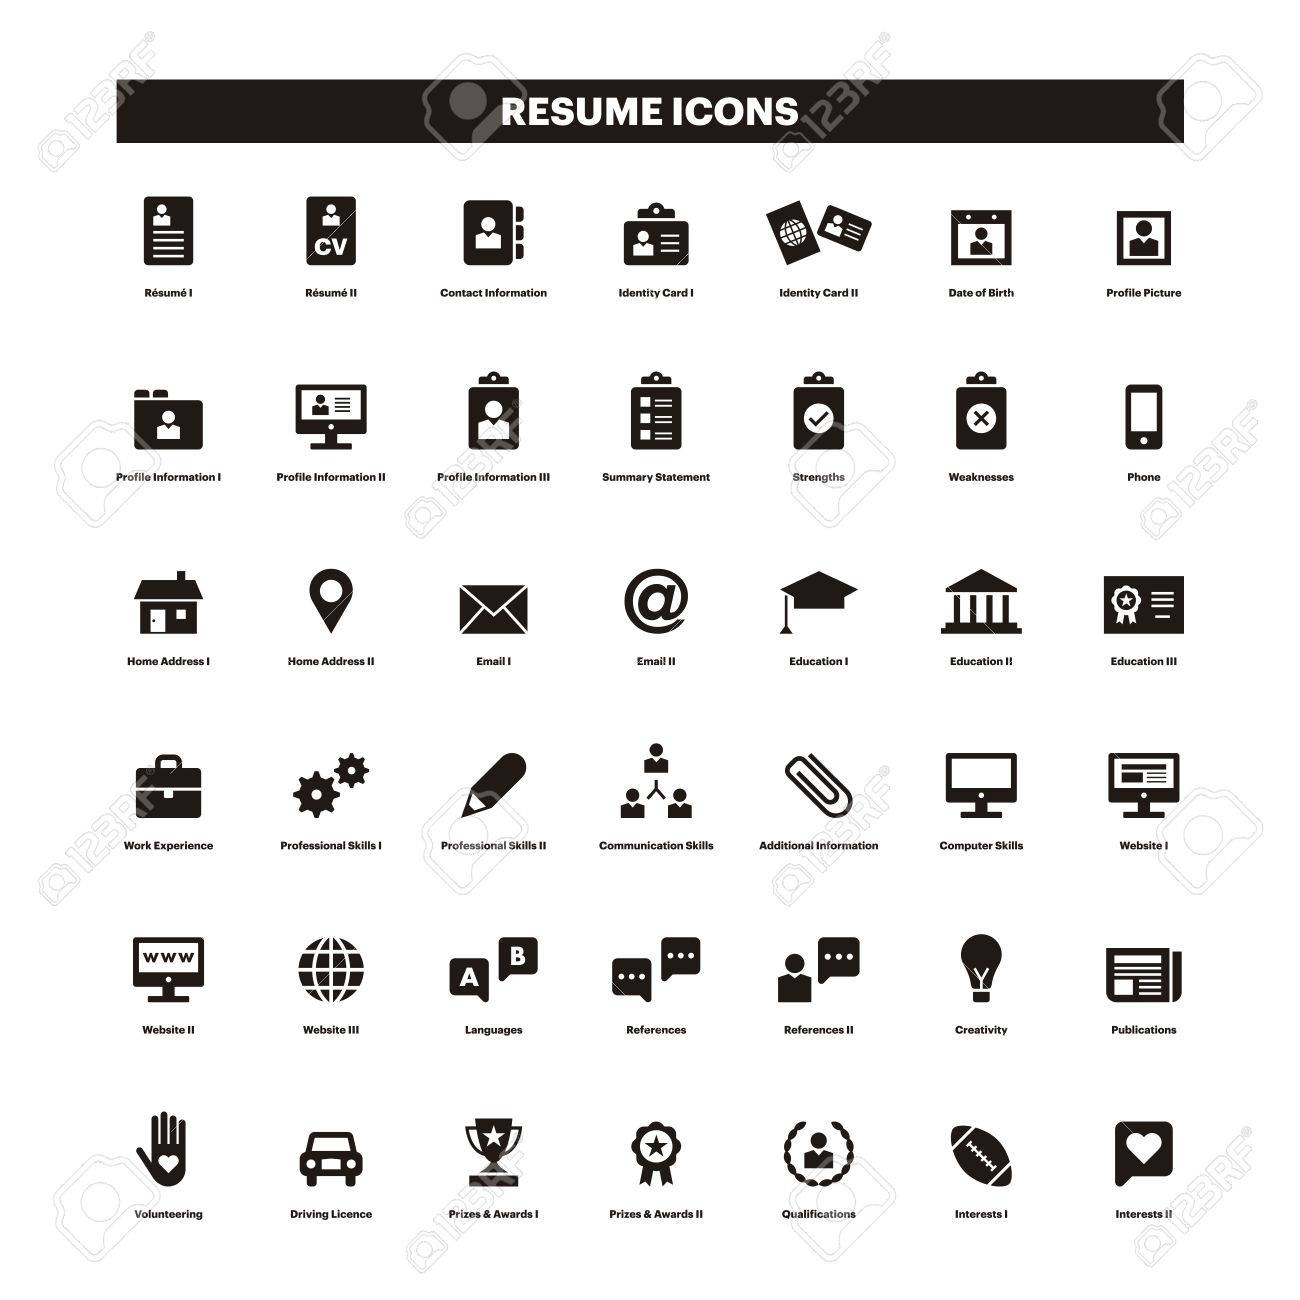 cv icons CV And Resume Black Solid Icons Royalty Free Cliparts, Vectors